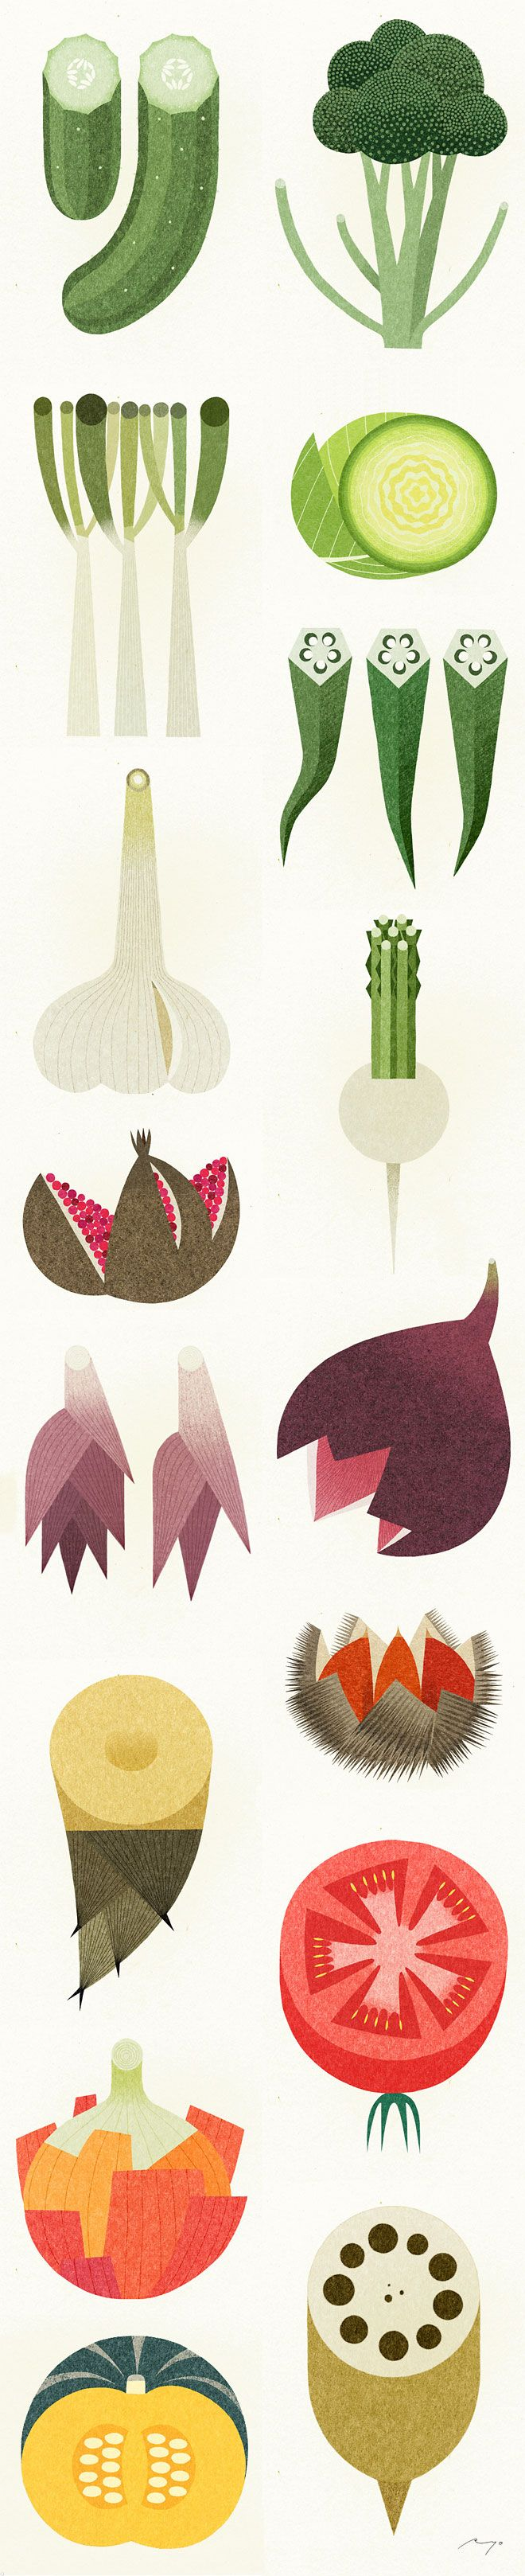 Ryo Takemasa #inspiration Torso Vertical Inspirations Blogging inspirational work, a visual source for Torso Vertical. www.facebook.com/TorsoVerticalDesign @torsovertical www.torsovertical.com